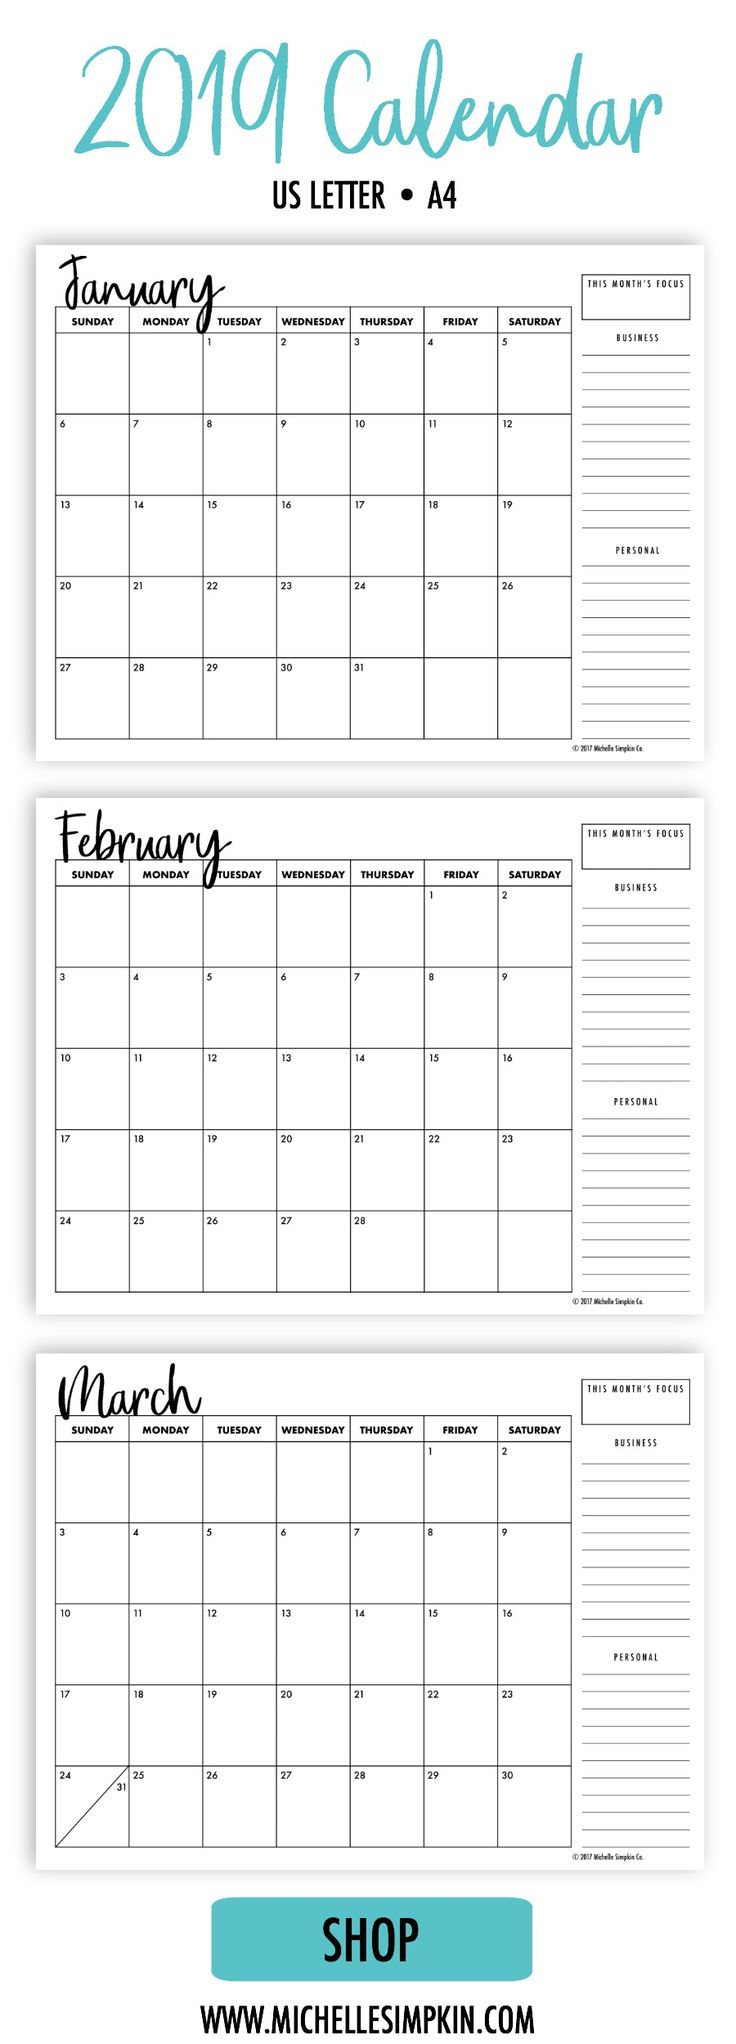 2019 Calendar - A simple, minimalist design to help you organize your life and business. Includes both Monday and Sunday starts. Printable Calendars | 2019 Calendar | Monthly Calendar | Monthly Planner #2019calendar #calendarprintable #printable www.michellesimpkin.com/2019-calendars